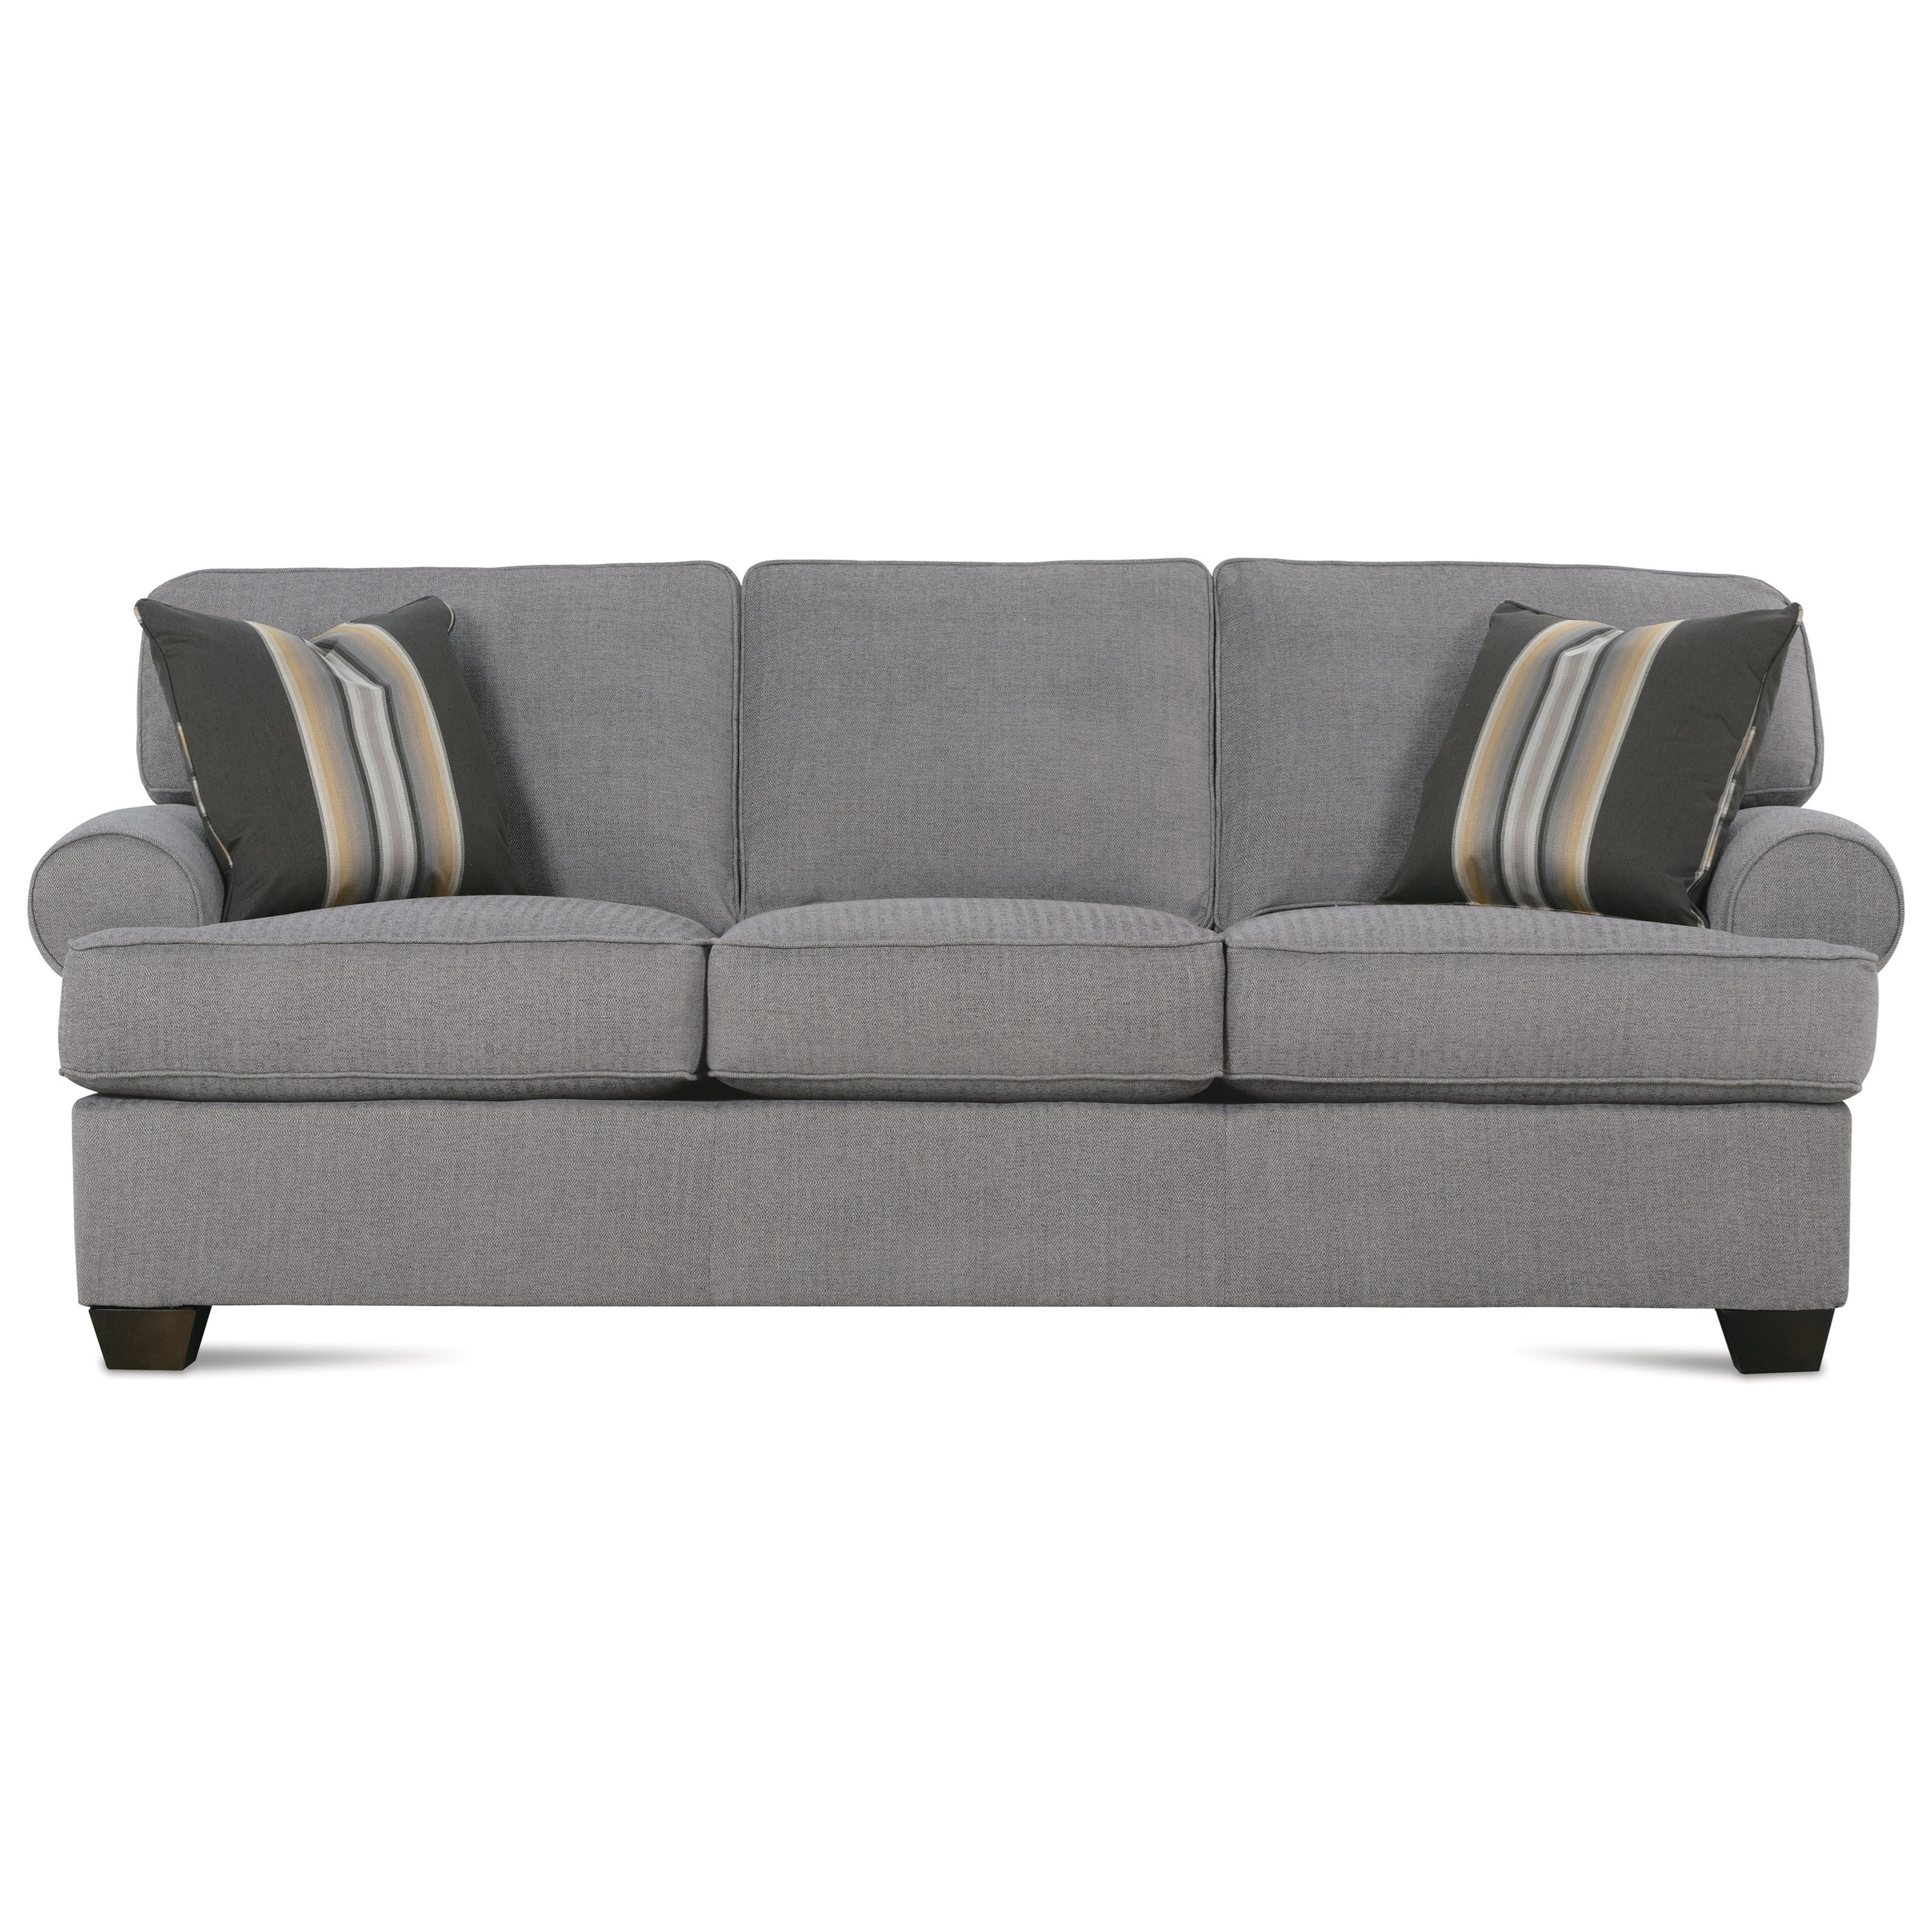 Rowe Queen Sofa Bed Refil Sofa : products2Frowe2Fcolor2Fcabinc929q b3 from forexrefiller.com size 3200 x 3200 jpeg 1329kB